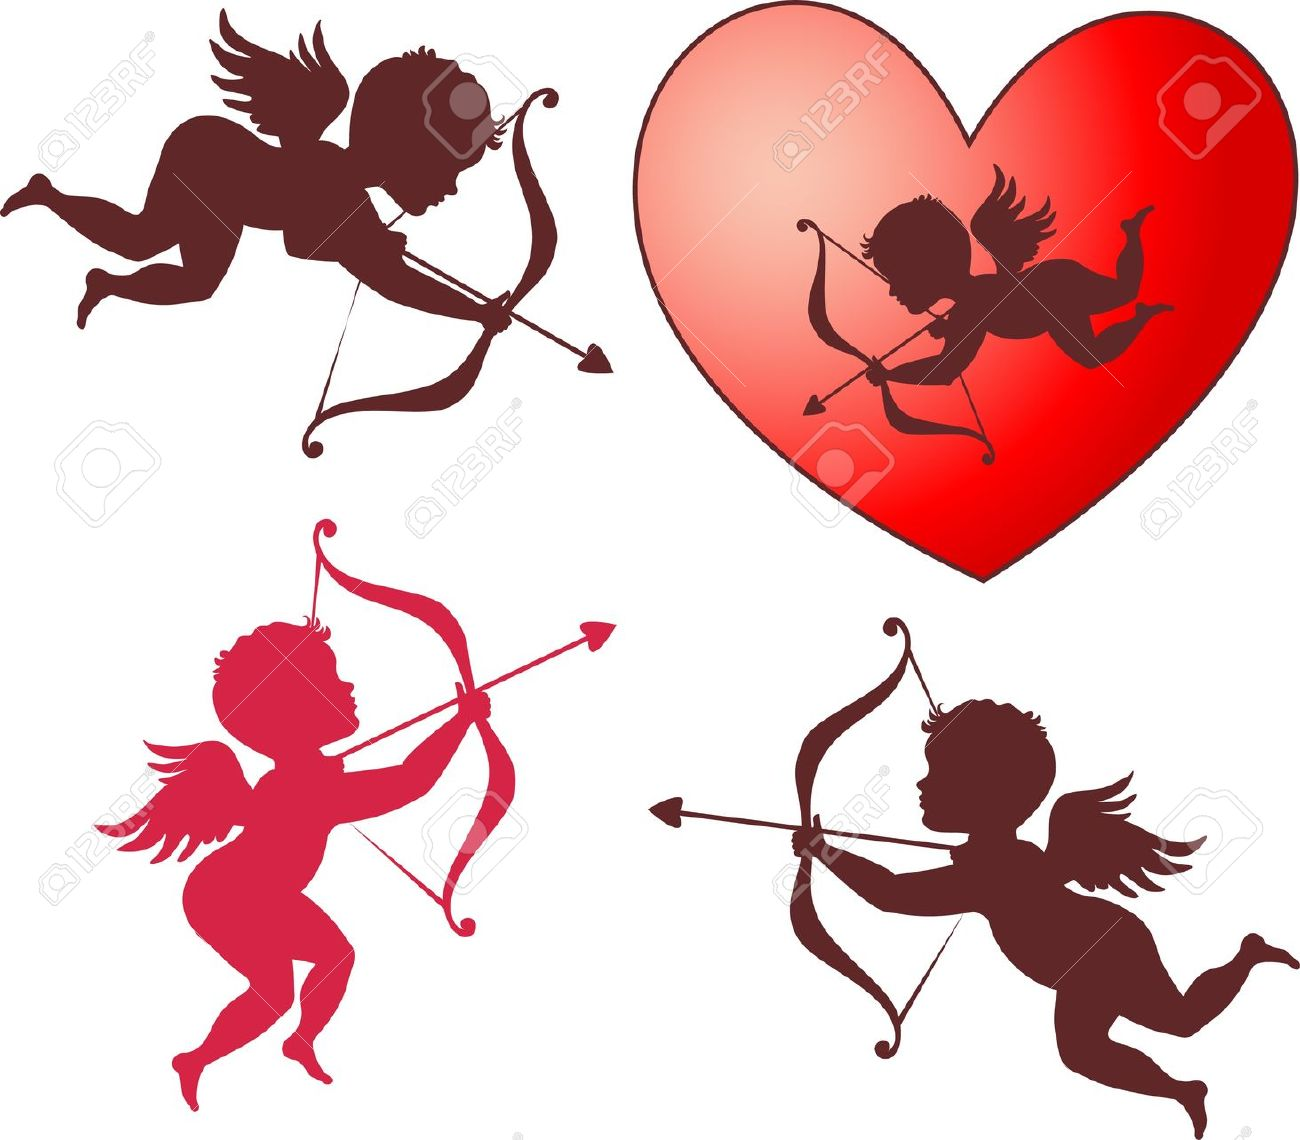 Cupid clipart wedding. Valentines pictures free download